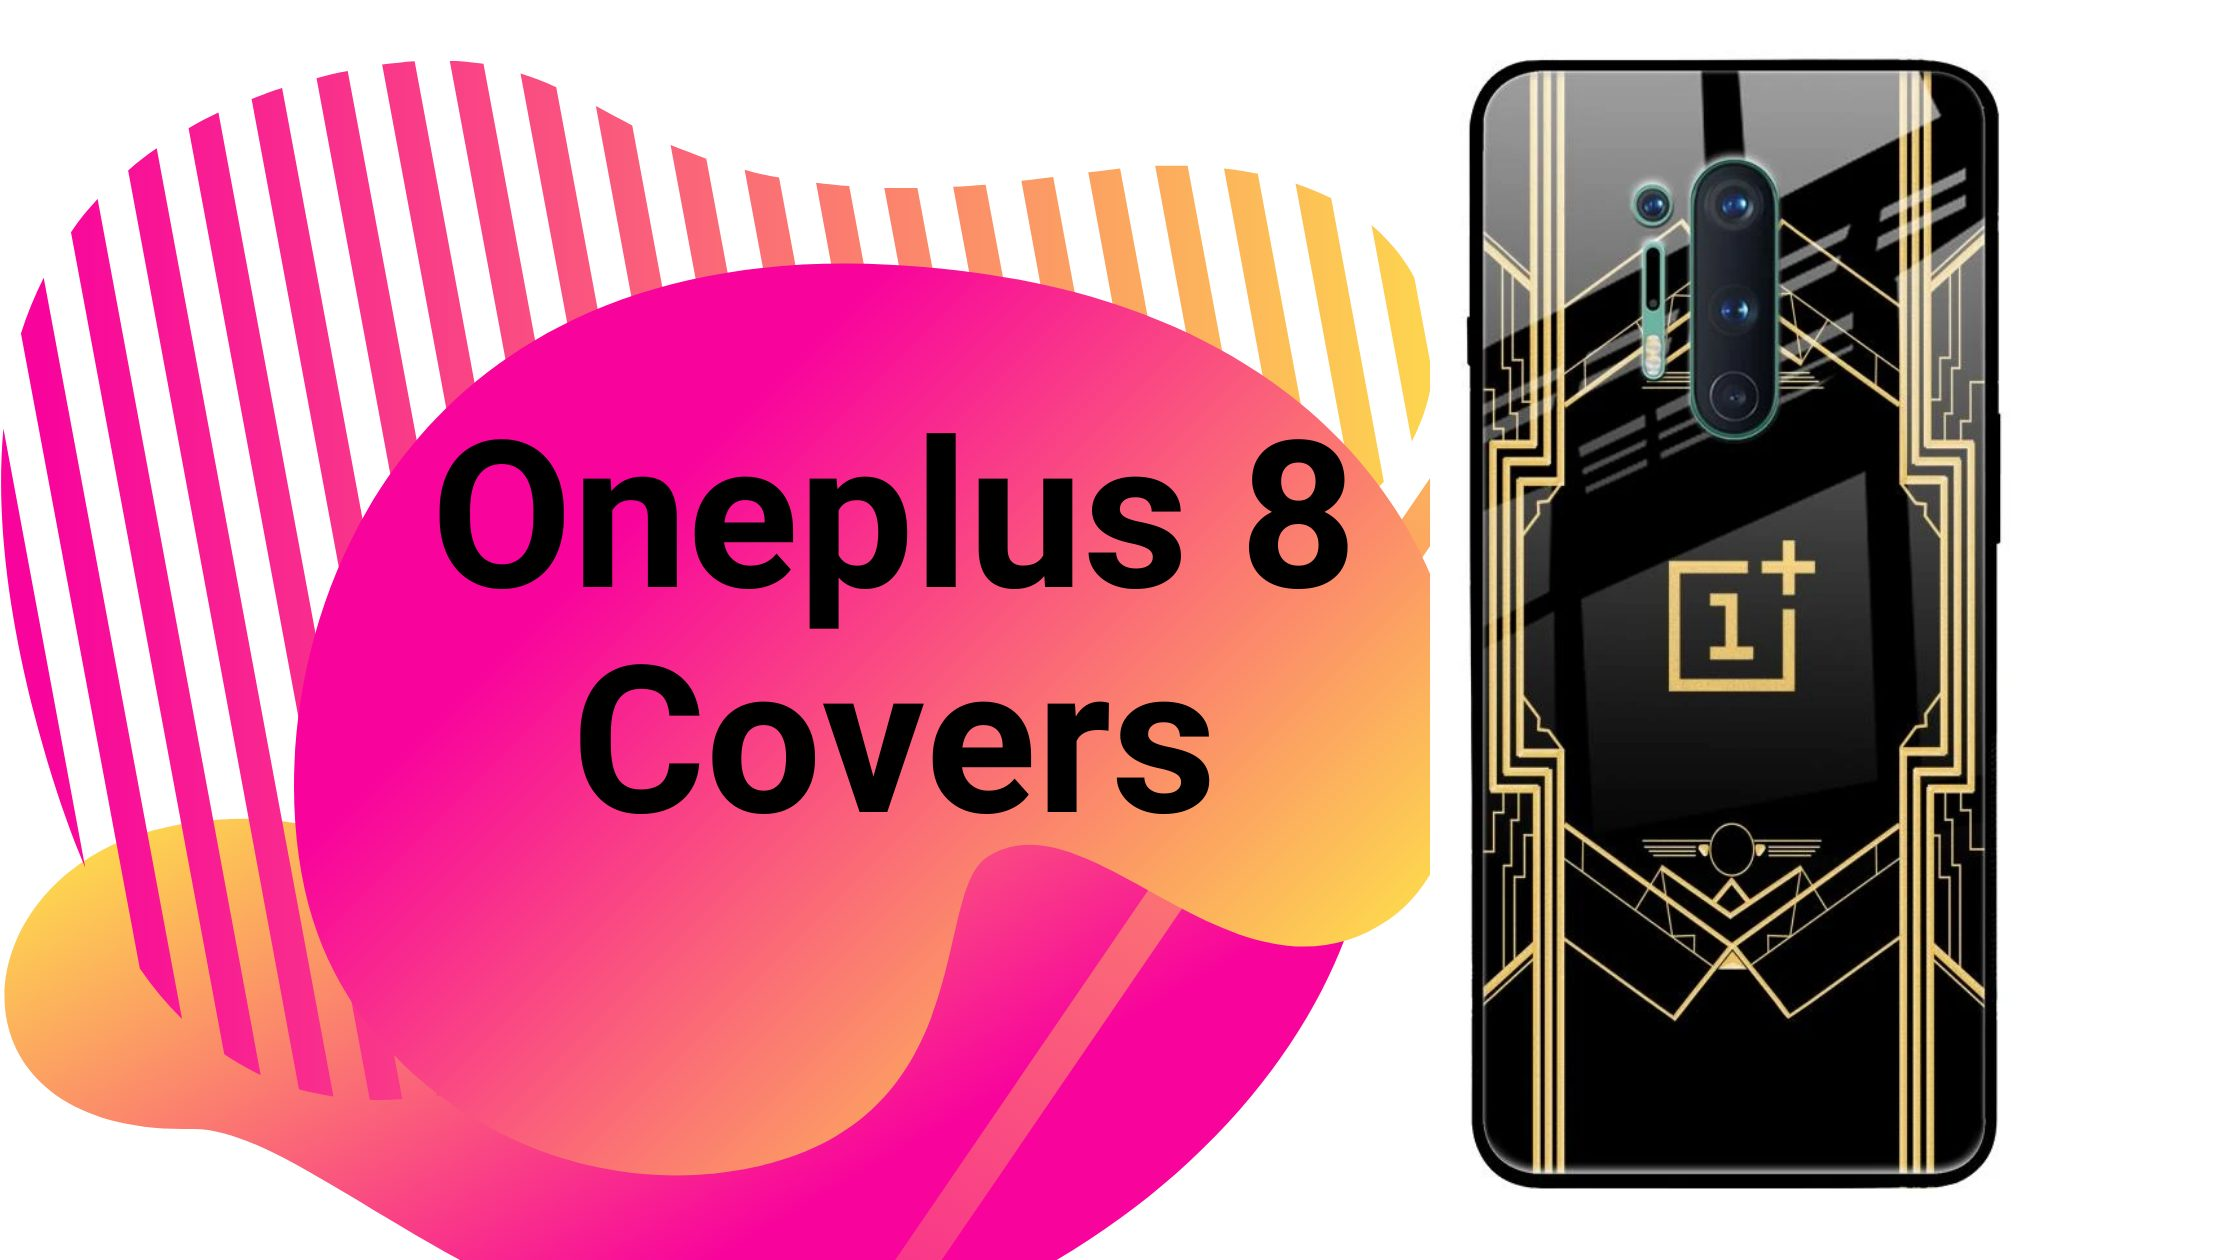 Oneplus 8 Covers